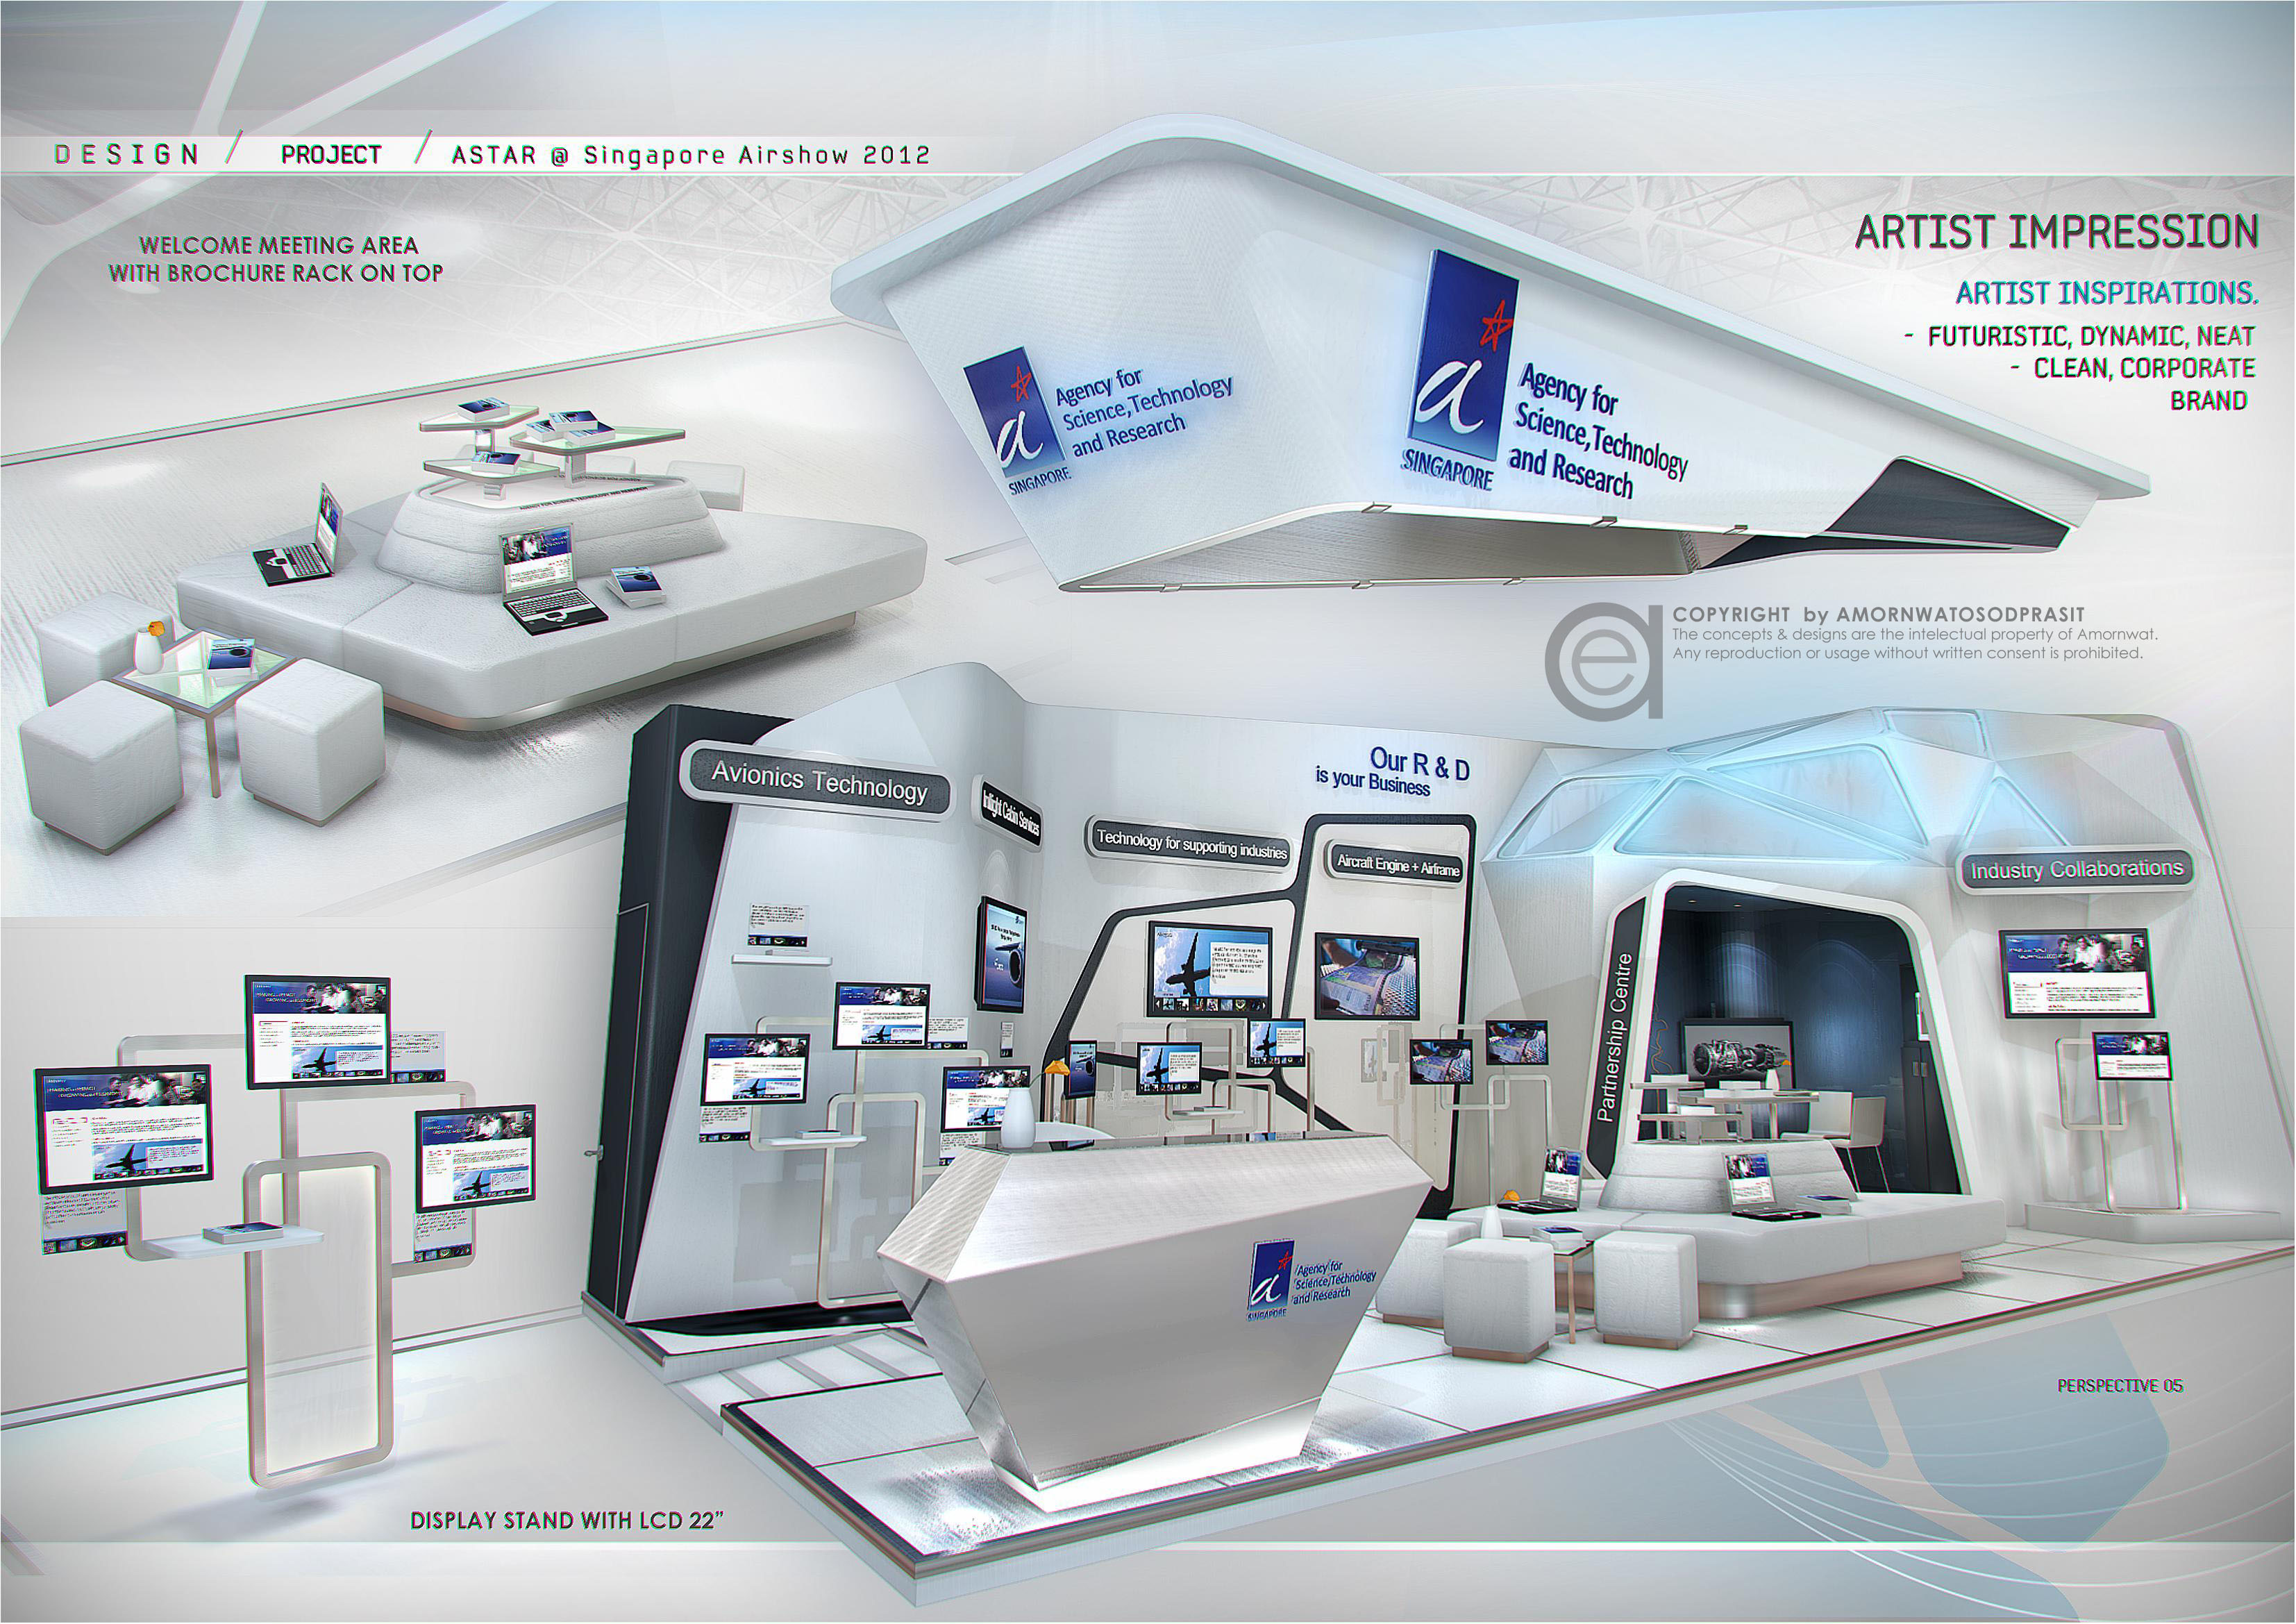 Exhibition Booth Design Singapore : Exhibition design special booth by amornwat